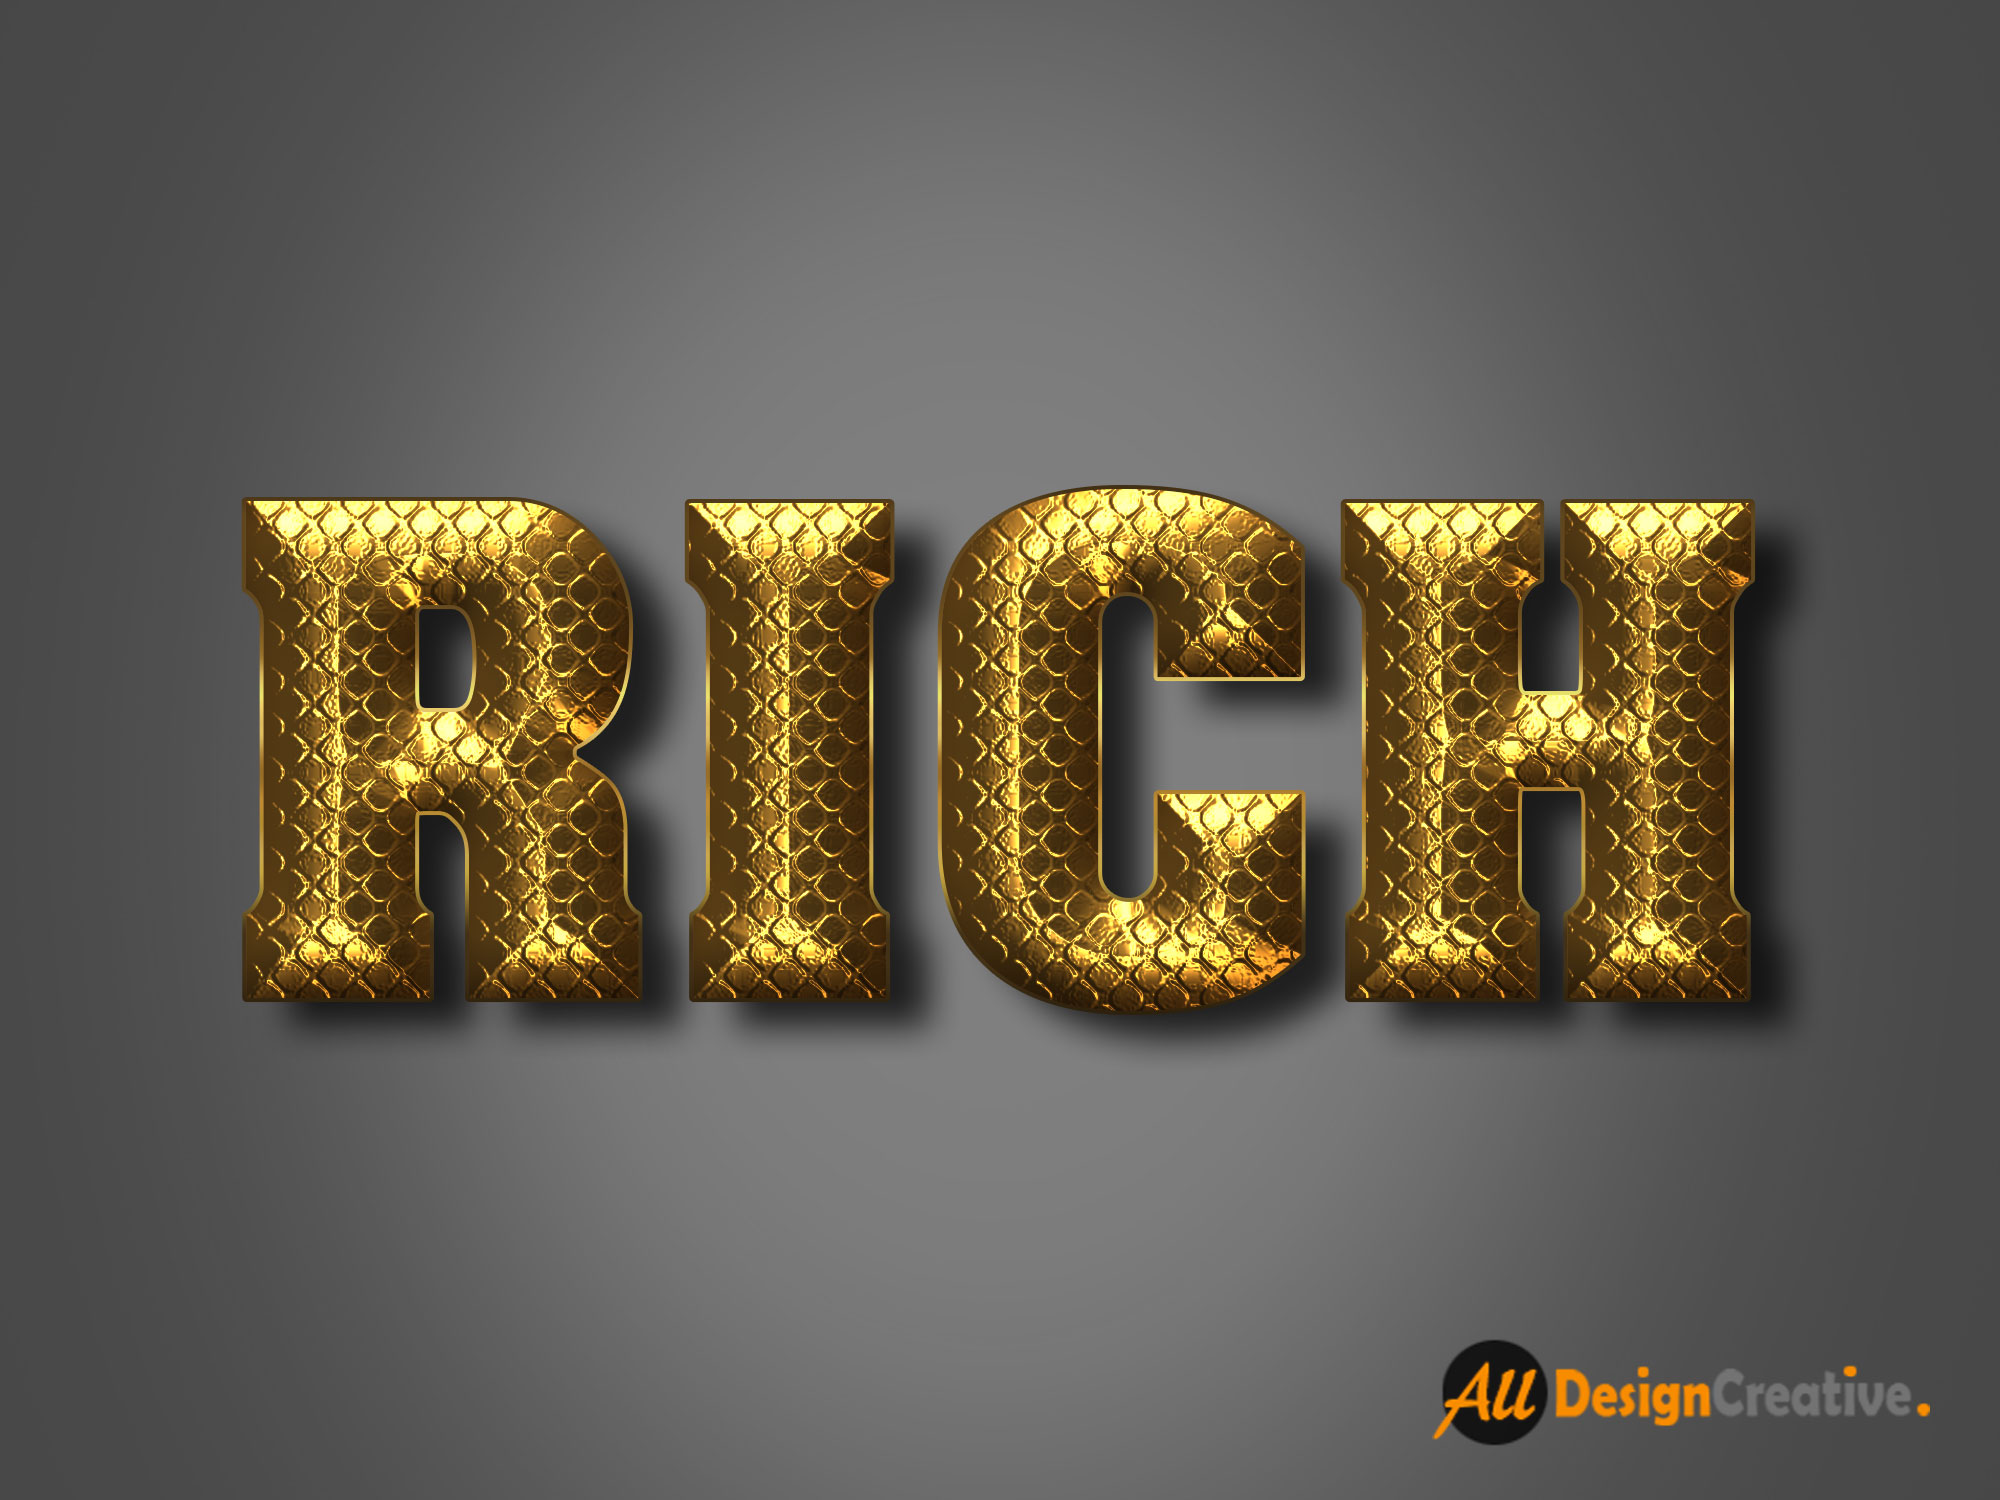 2016+ Photoshop Text Effect PSD Files Free Download | All Design ...